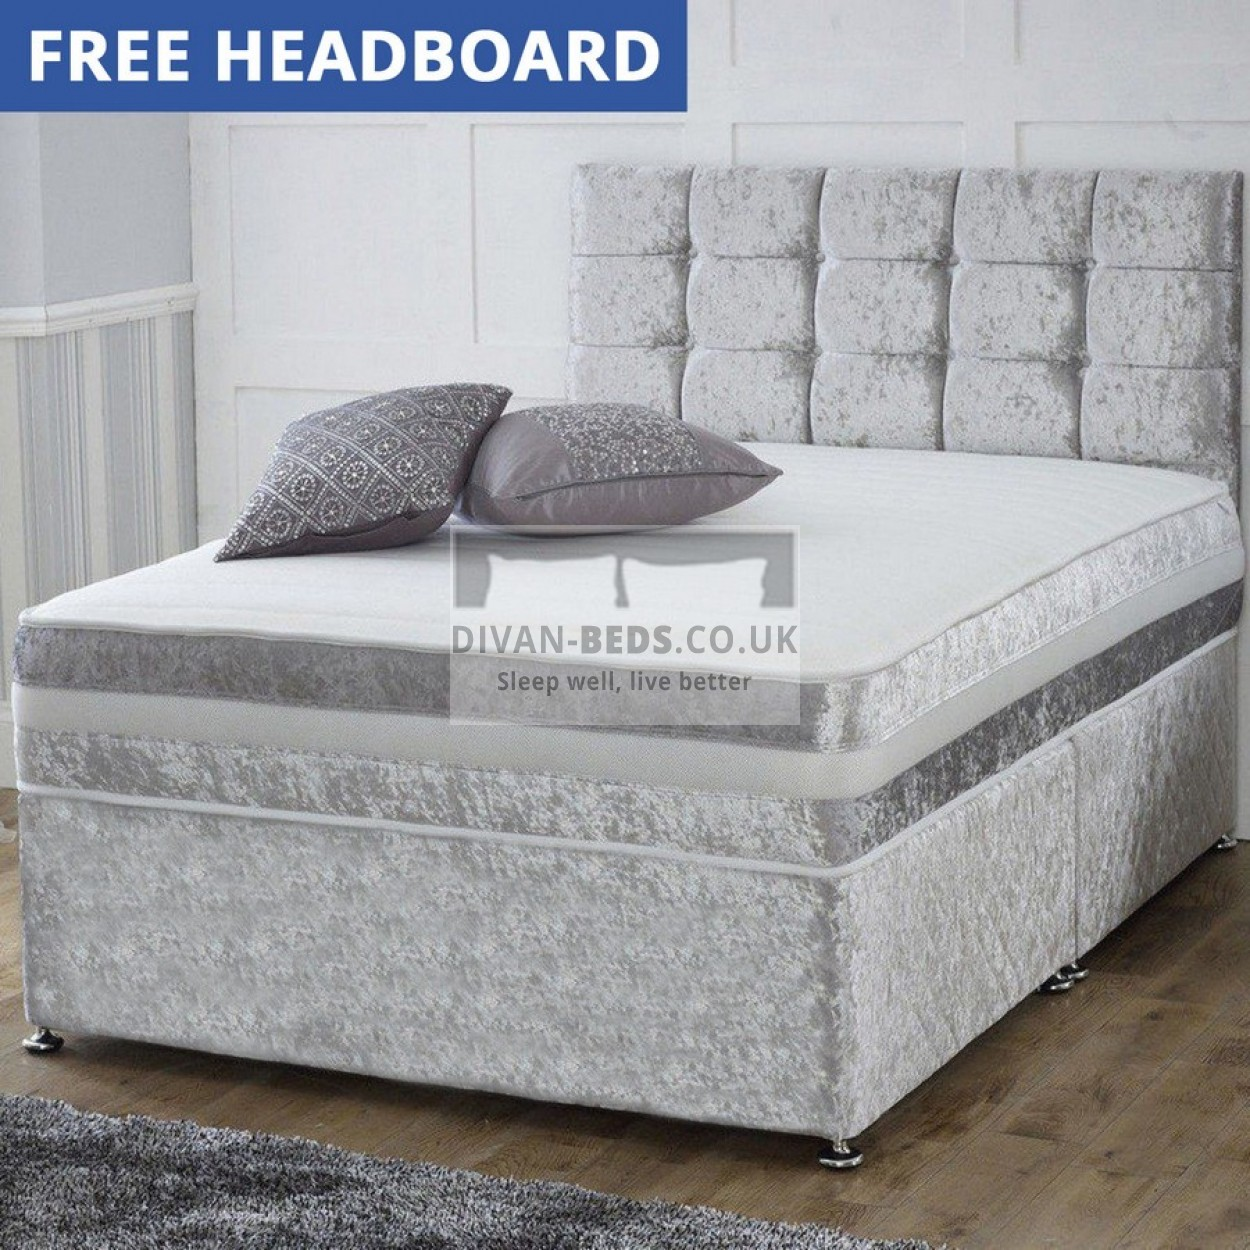 Patrick crushed velvet divan bed with 1500 pocket orthopaedic mattress guaranteed cheapest Bed divan